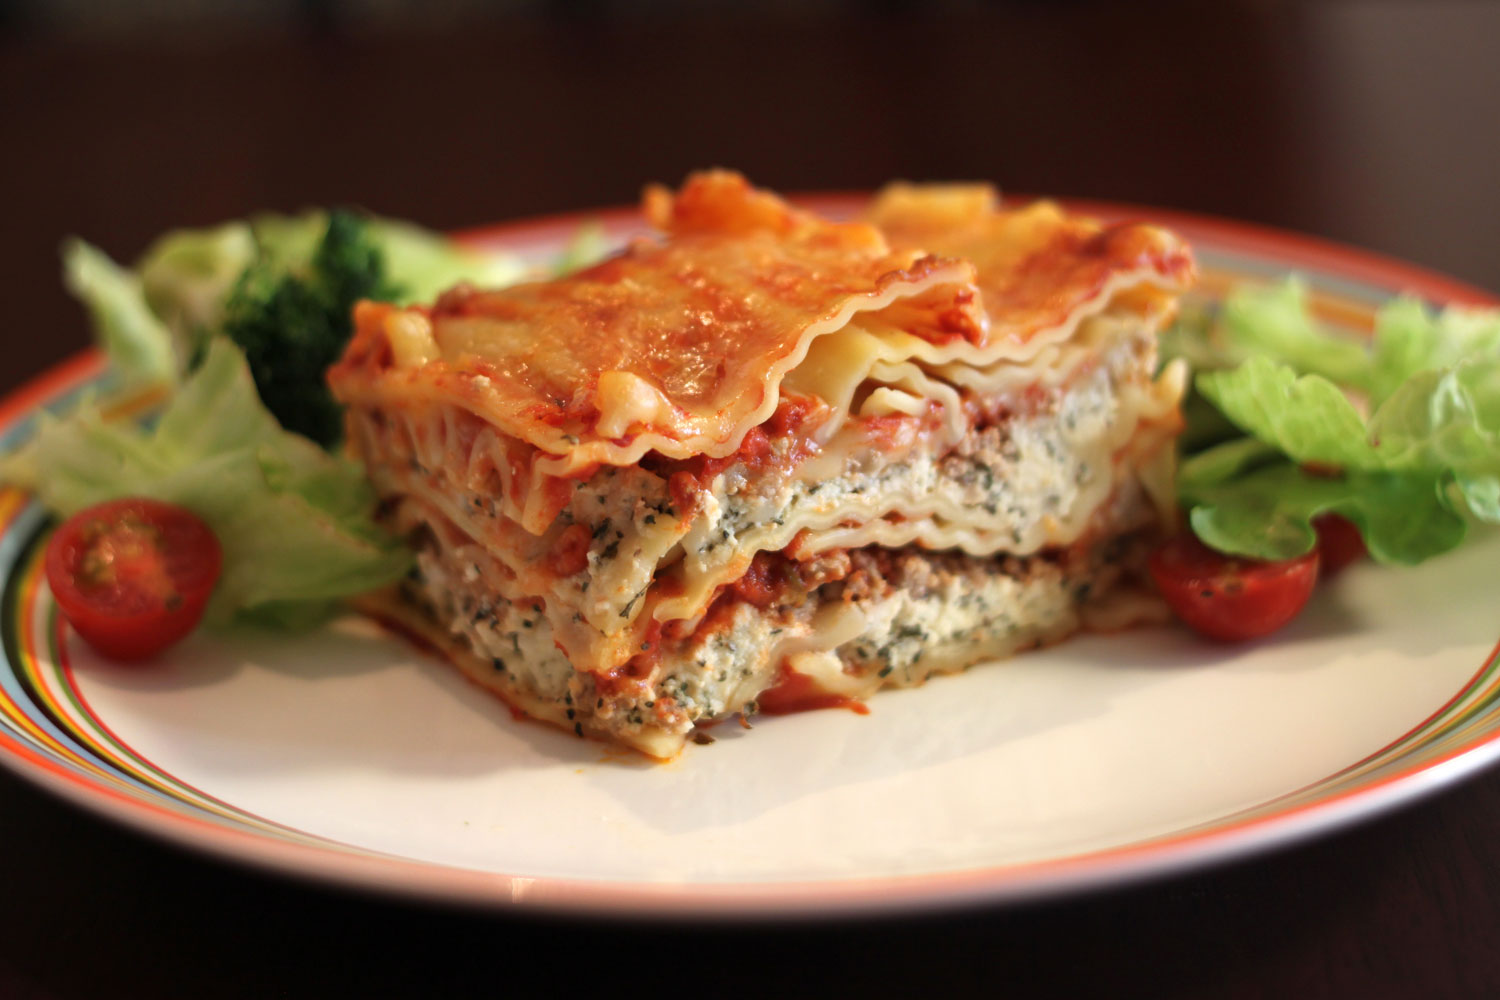 Lasagna with salad on a plate